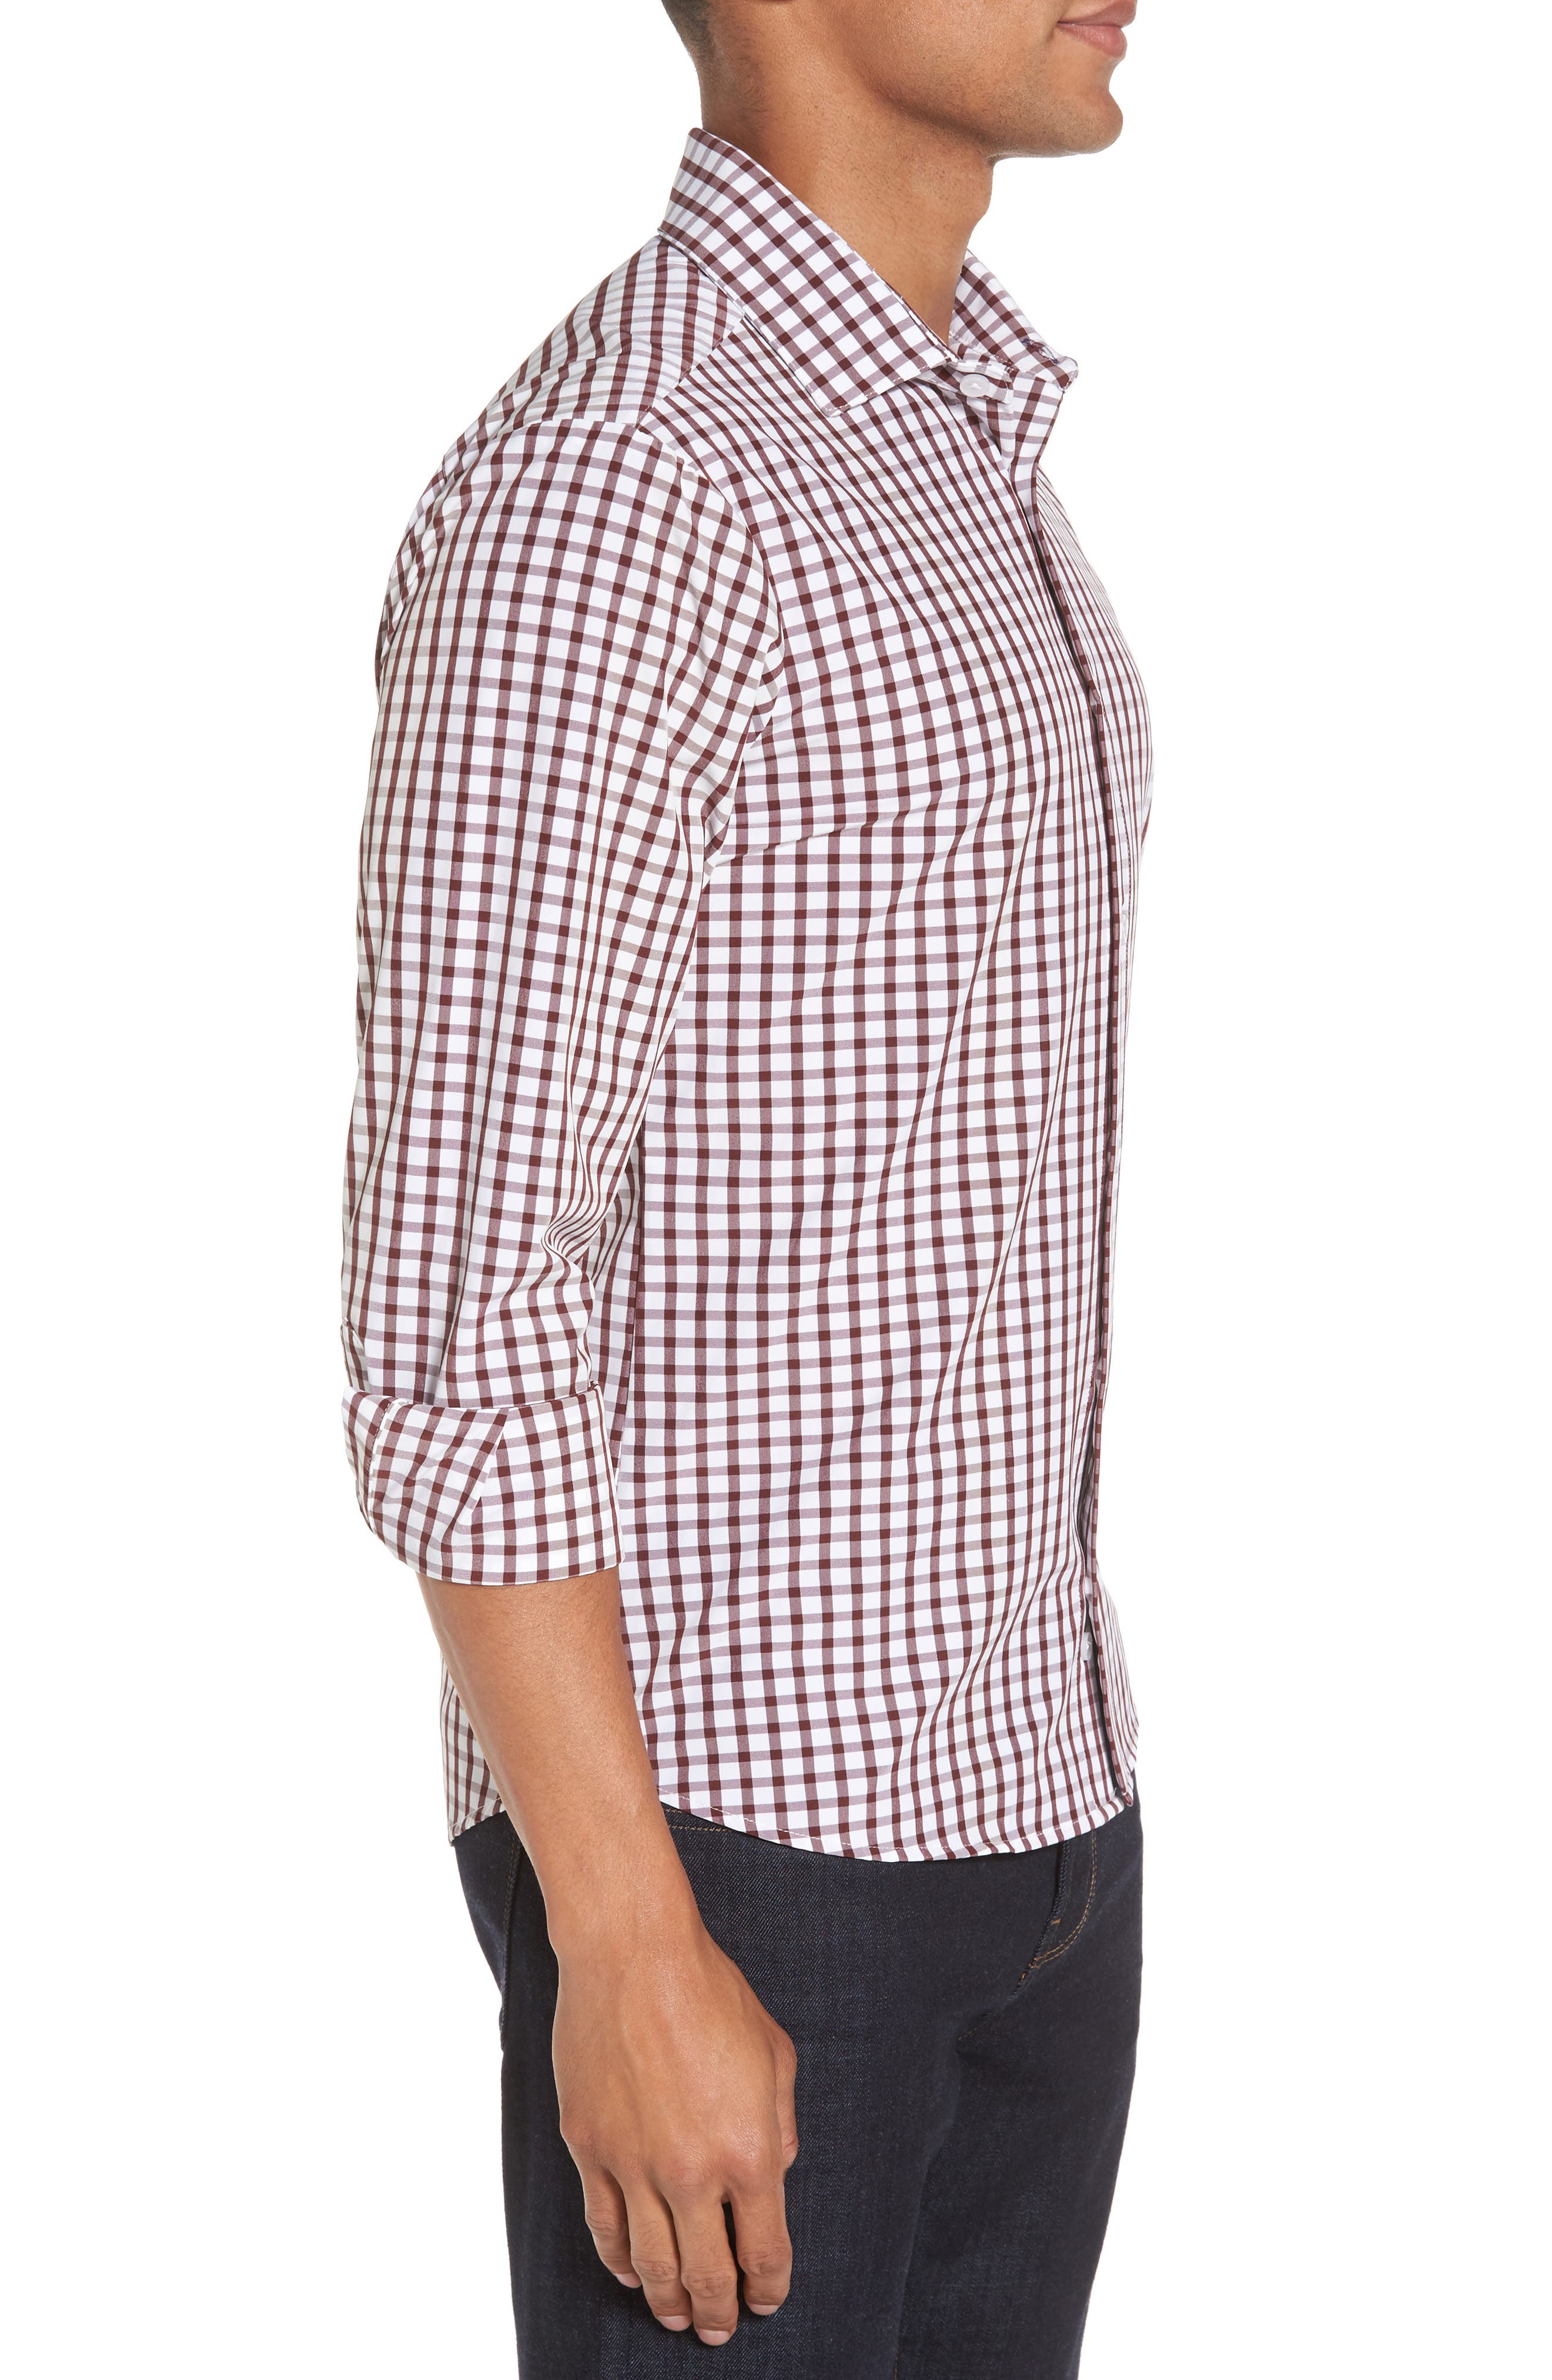 Cooper Check Performance Sport Shirt,                             Alternate thumbnail 3, color,                             600